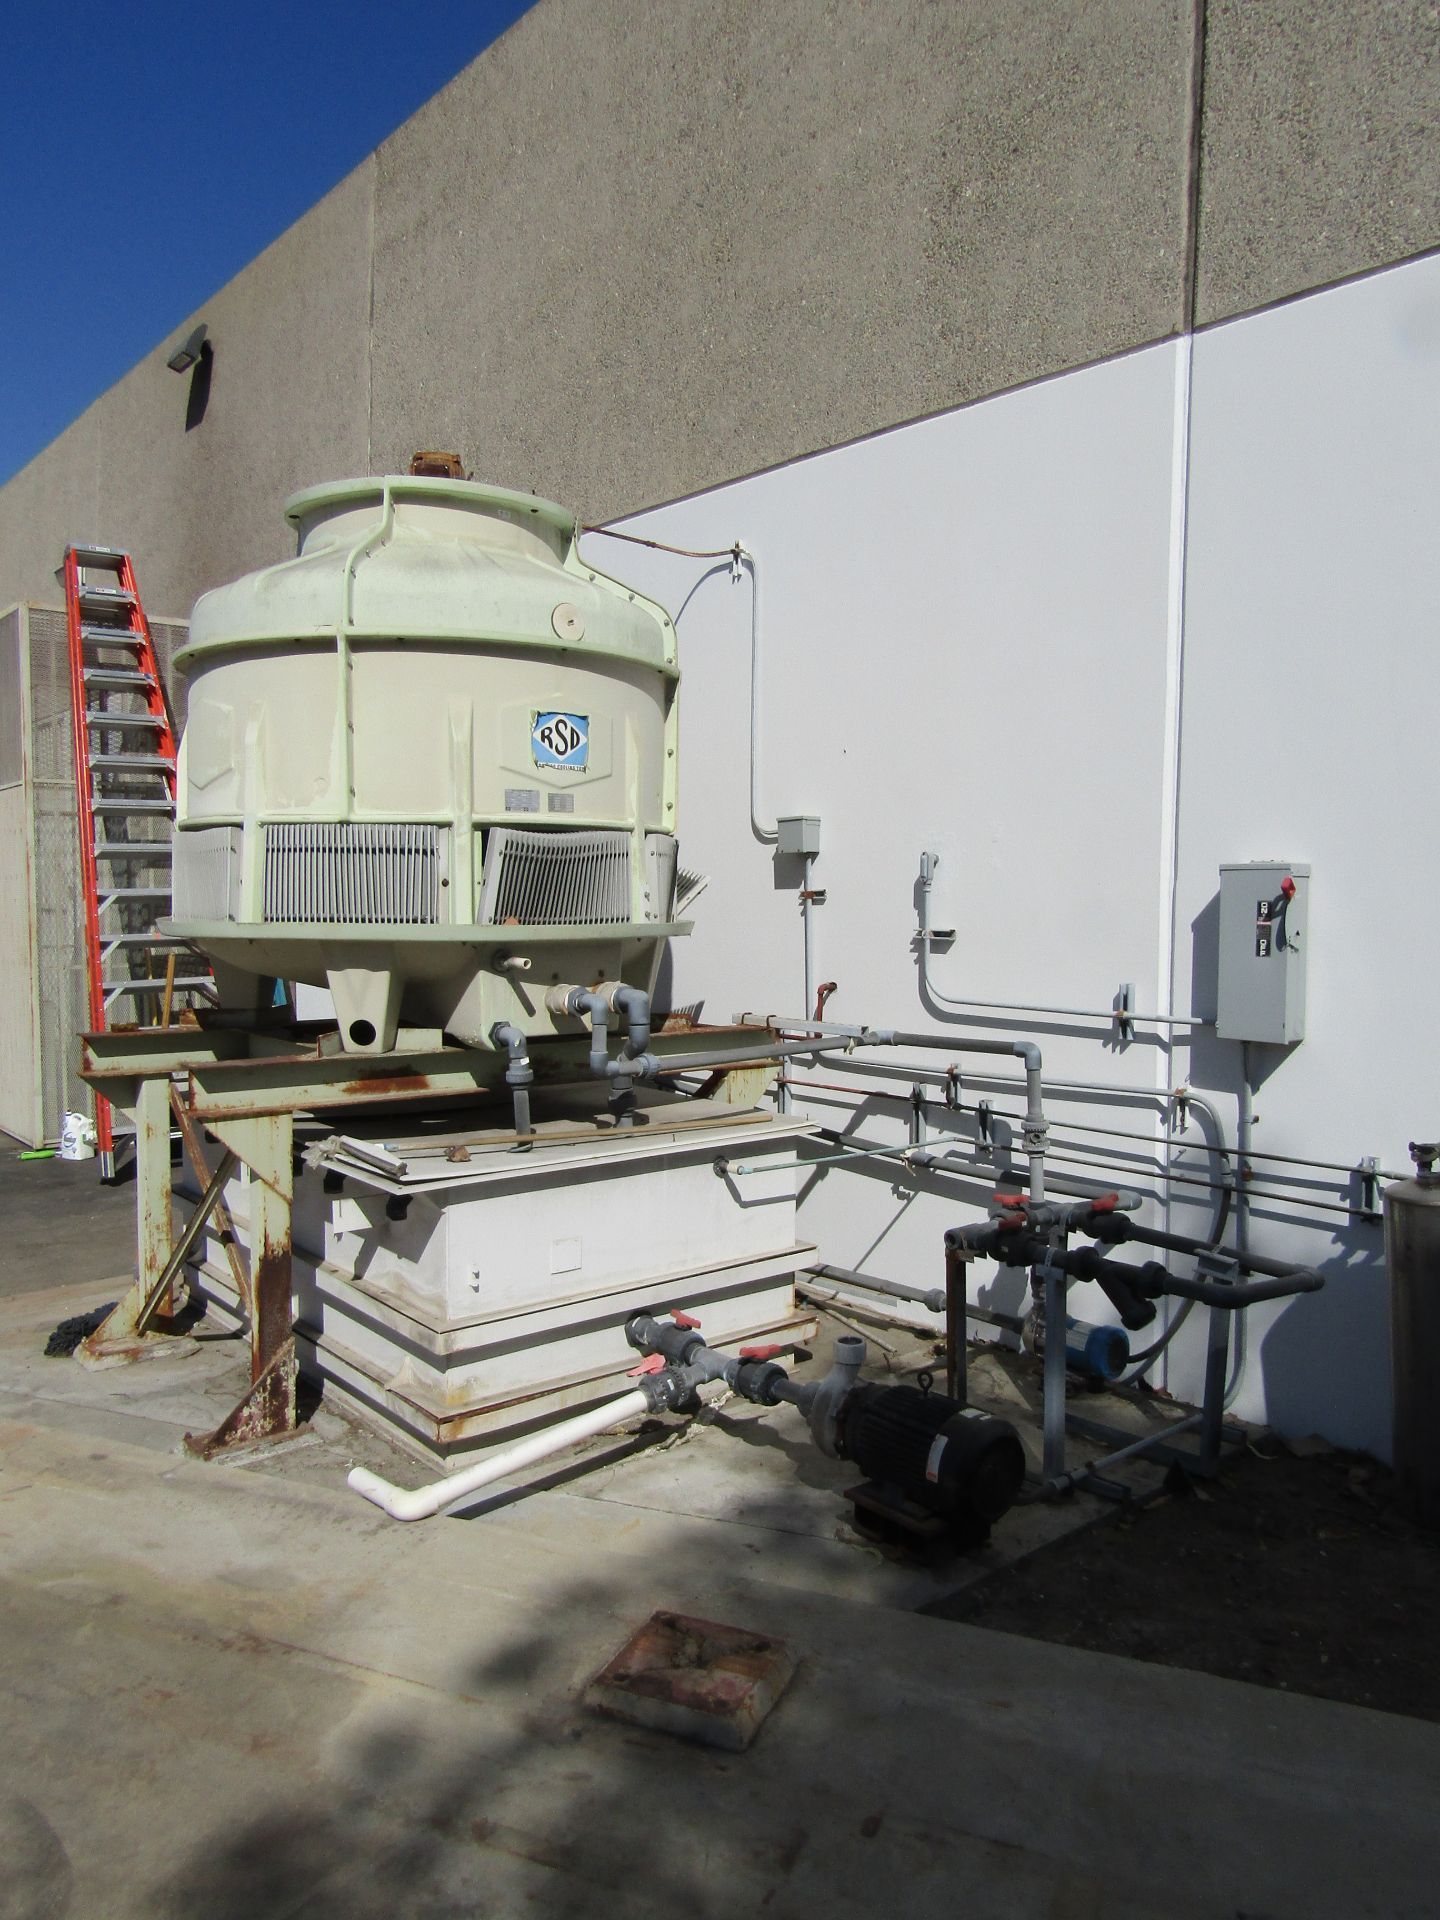 Lot 16 - RSD Cooling Tower, Model 05.0, Serial 01074, Motor 1.5 Hp, 230/460 V, 3 Phase, Water Cooling